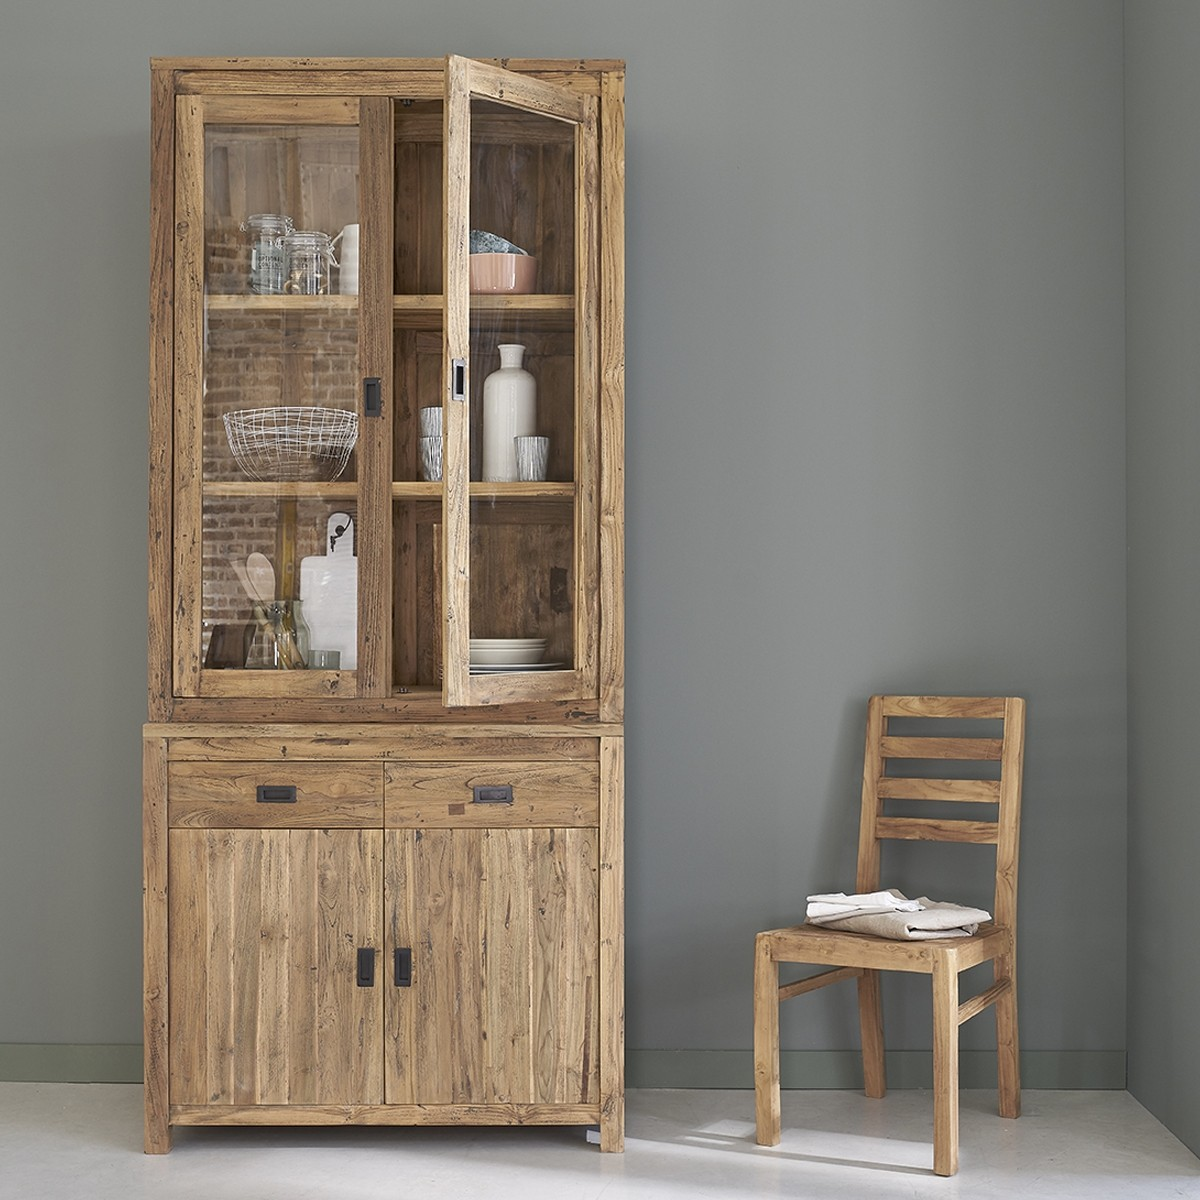 vaisselier en bois de teck recycl 100 cargo bois dessus bois dessous. Black Bedroom Furniture Sets. Home Design Ideas